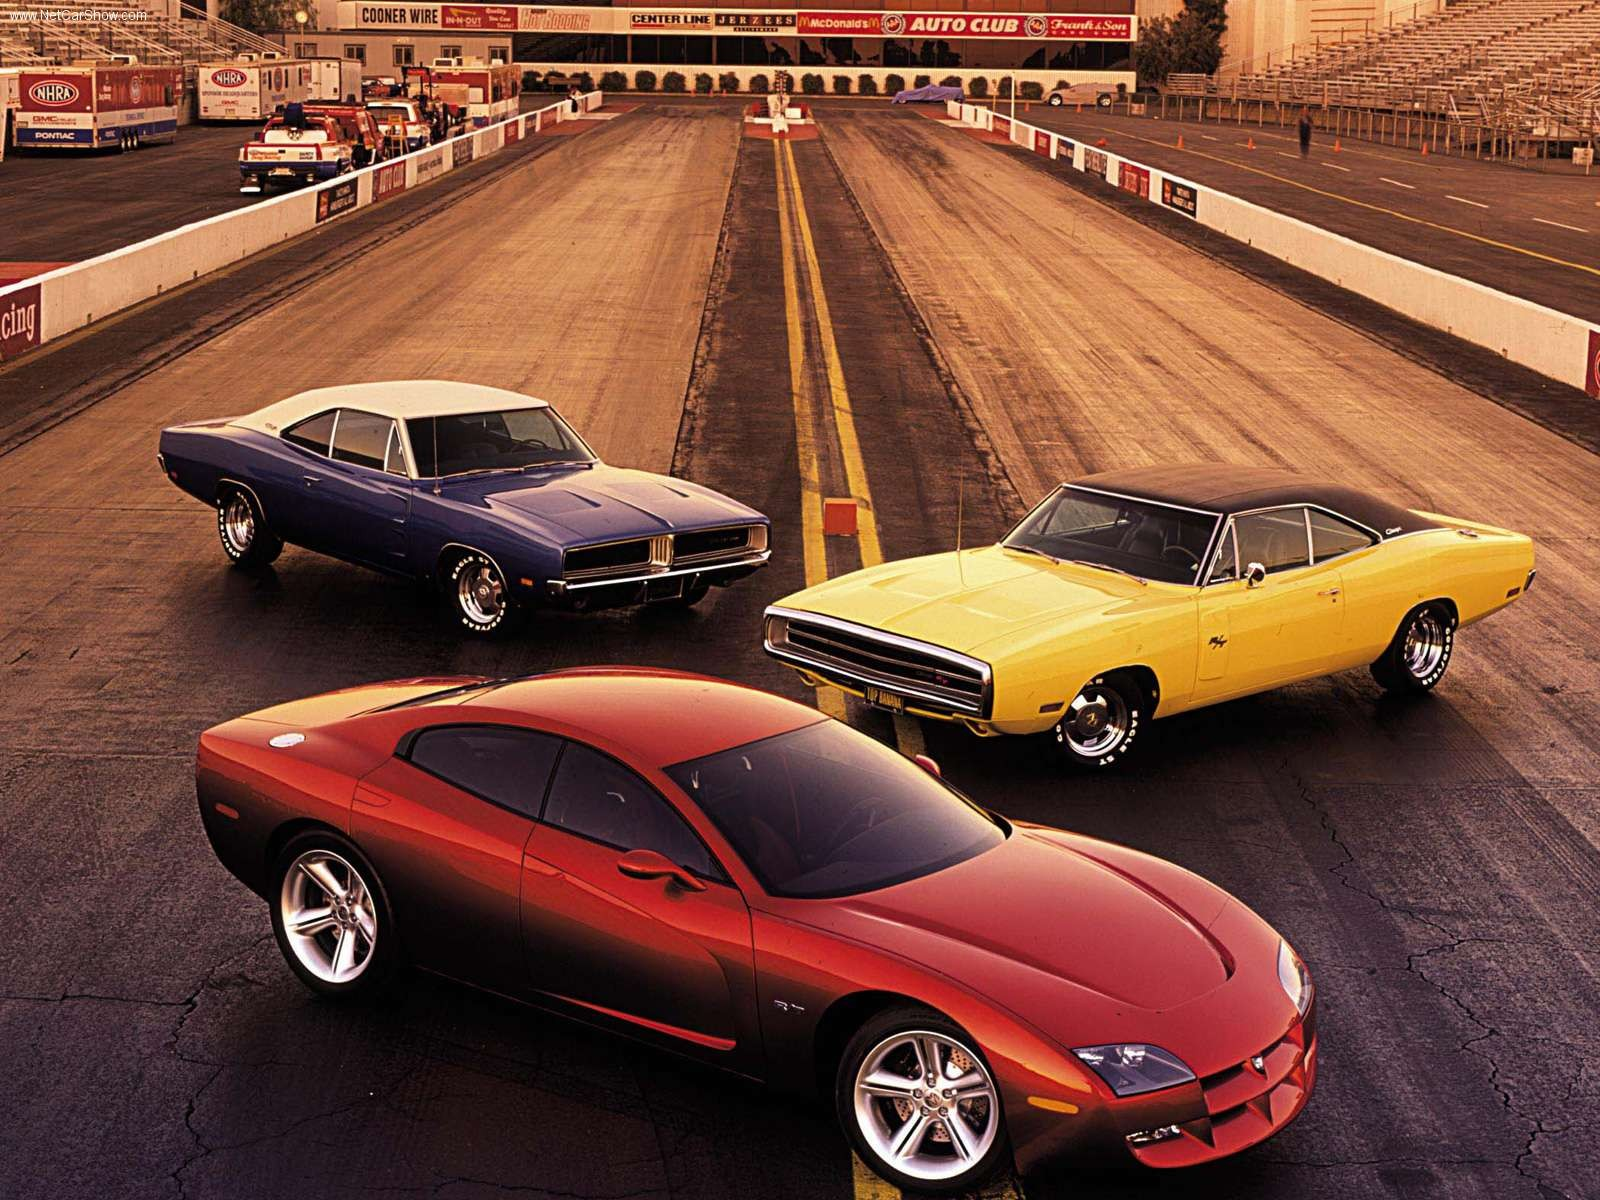 dodge charger nicknames  1999 Dodge Charger R/T Concept   AmcarGuide.com - American ..